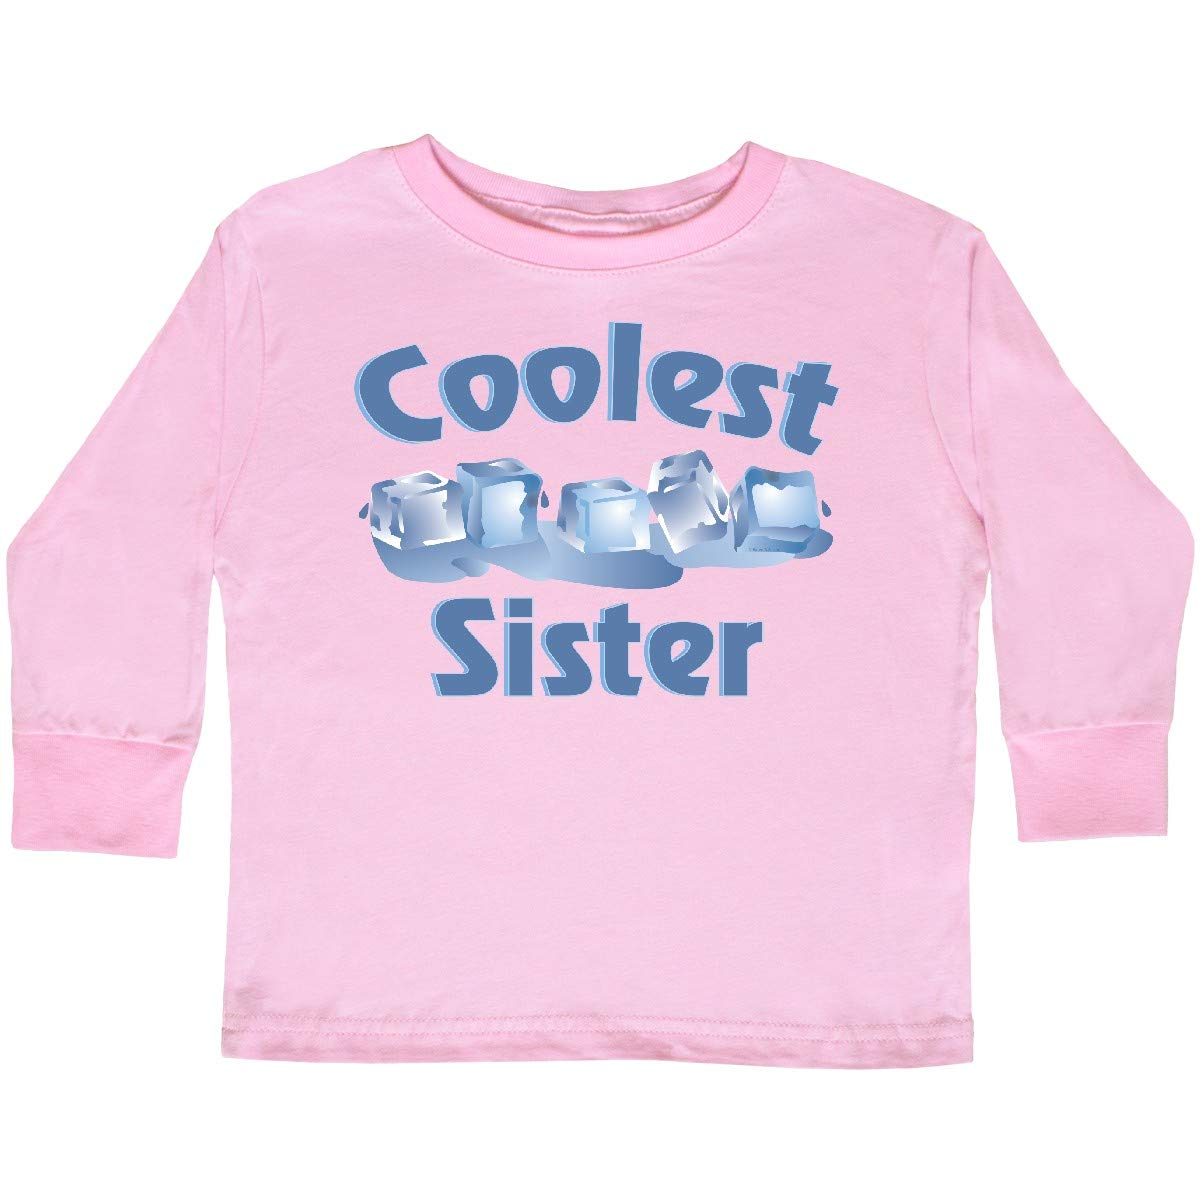 inktastic Coolest Sister Toddler Long Sleeve T-Shirt